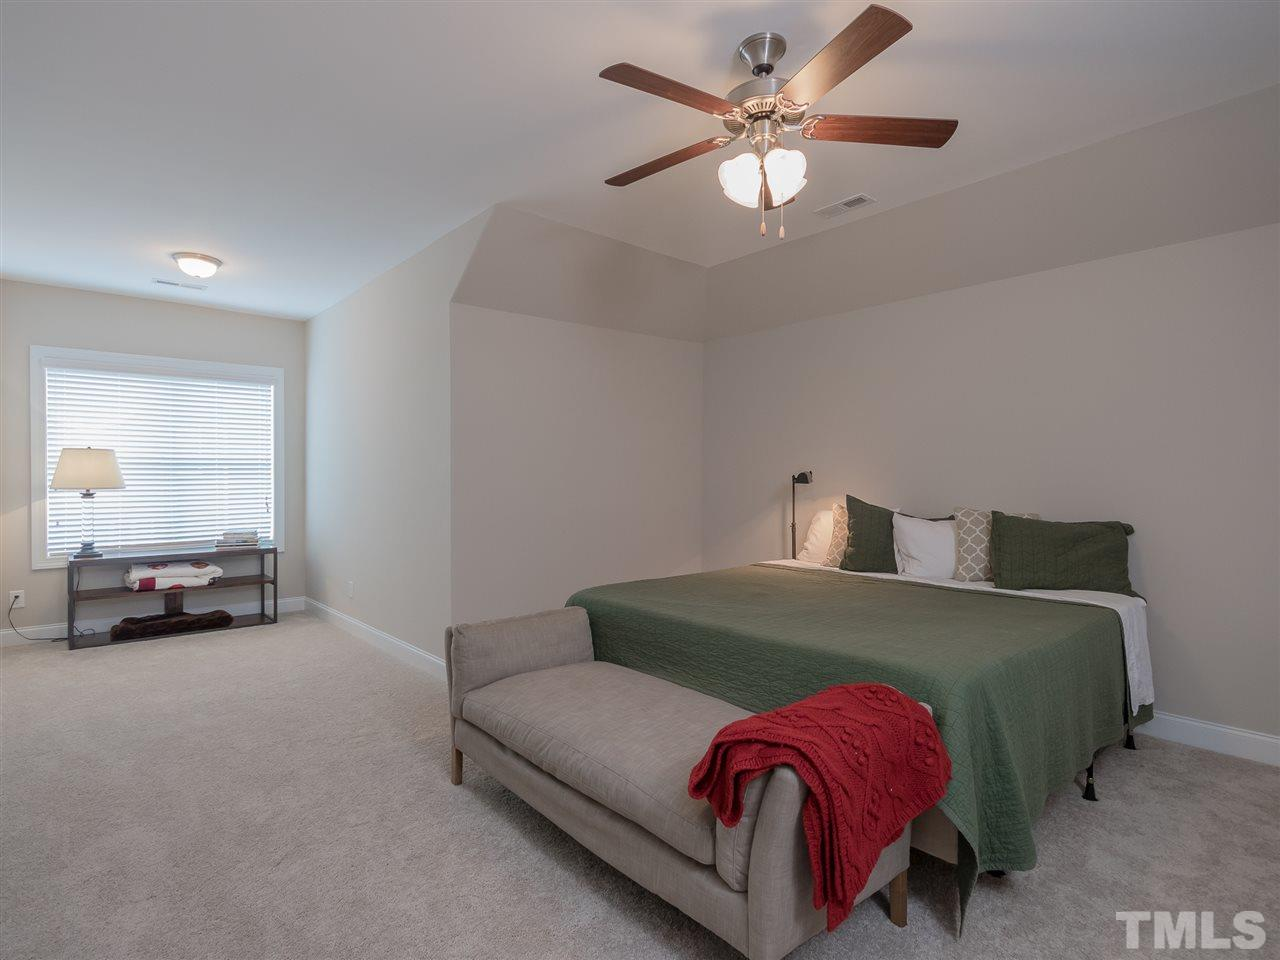 Multi purpose room. Forth bedroom, bonus or media room. This room has access to a full bath and walk in storage.